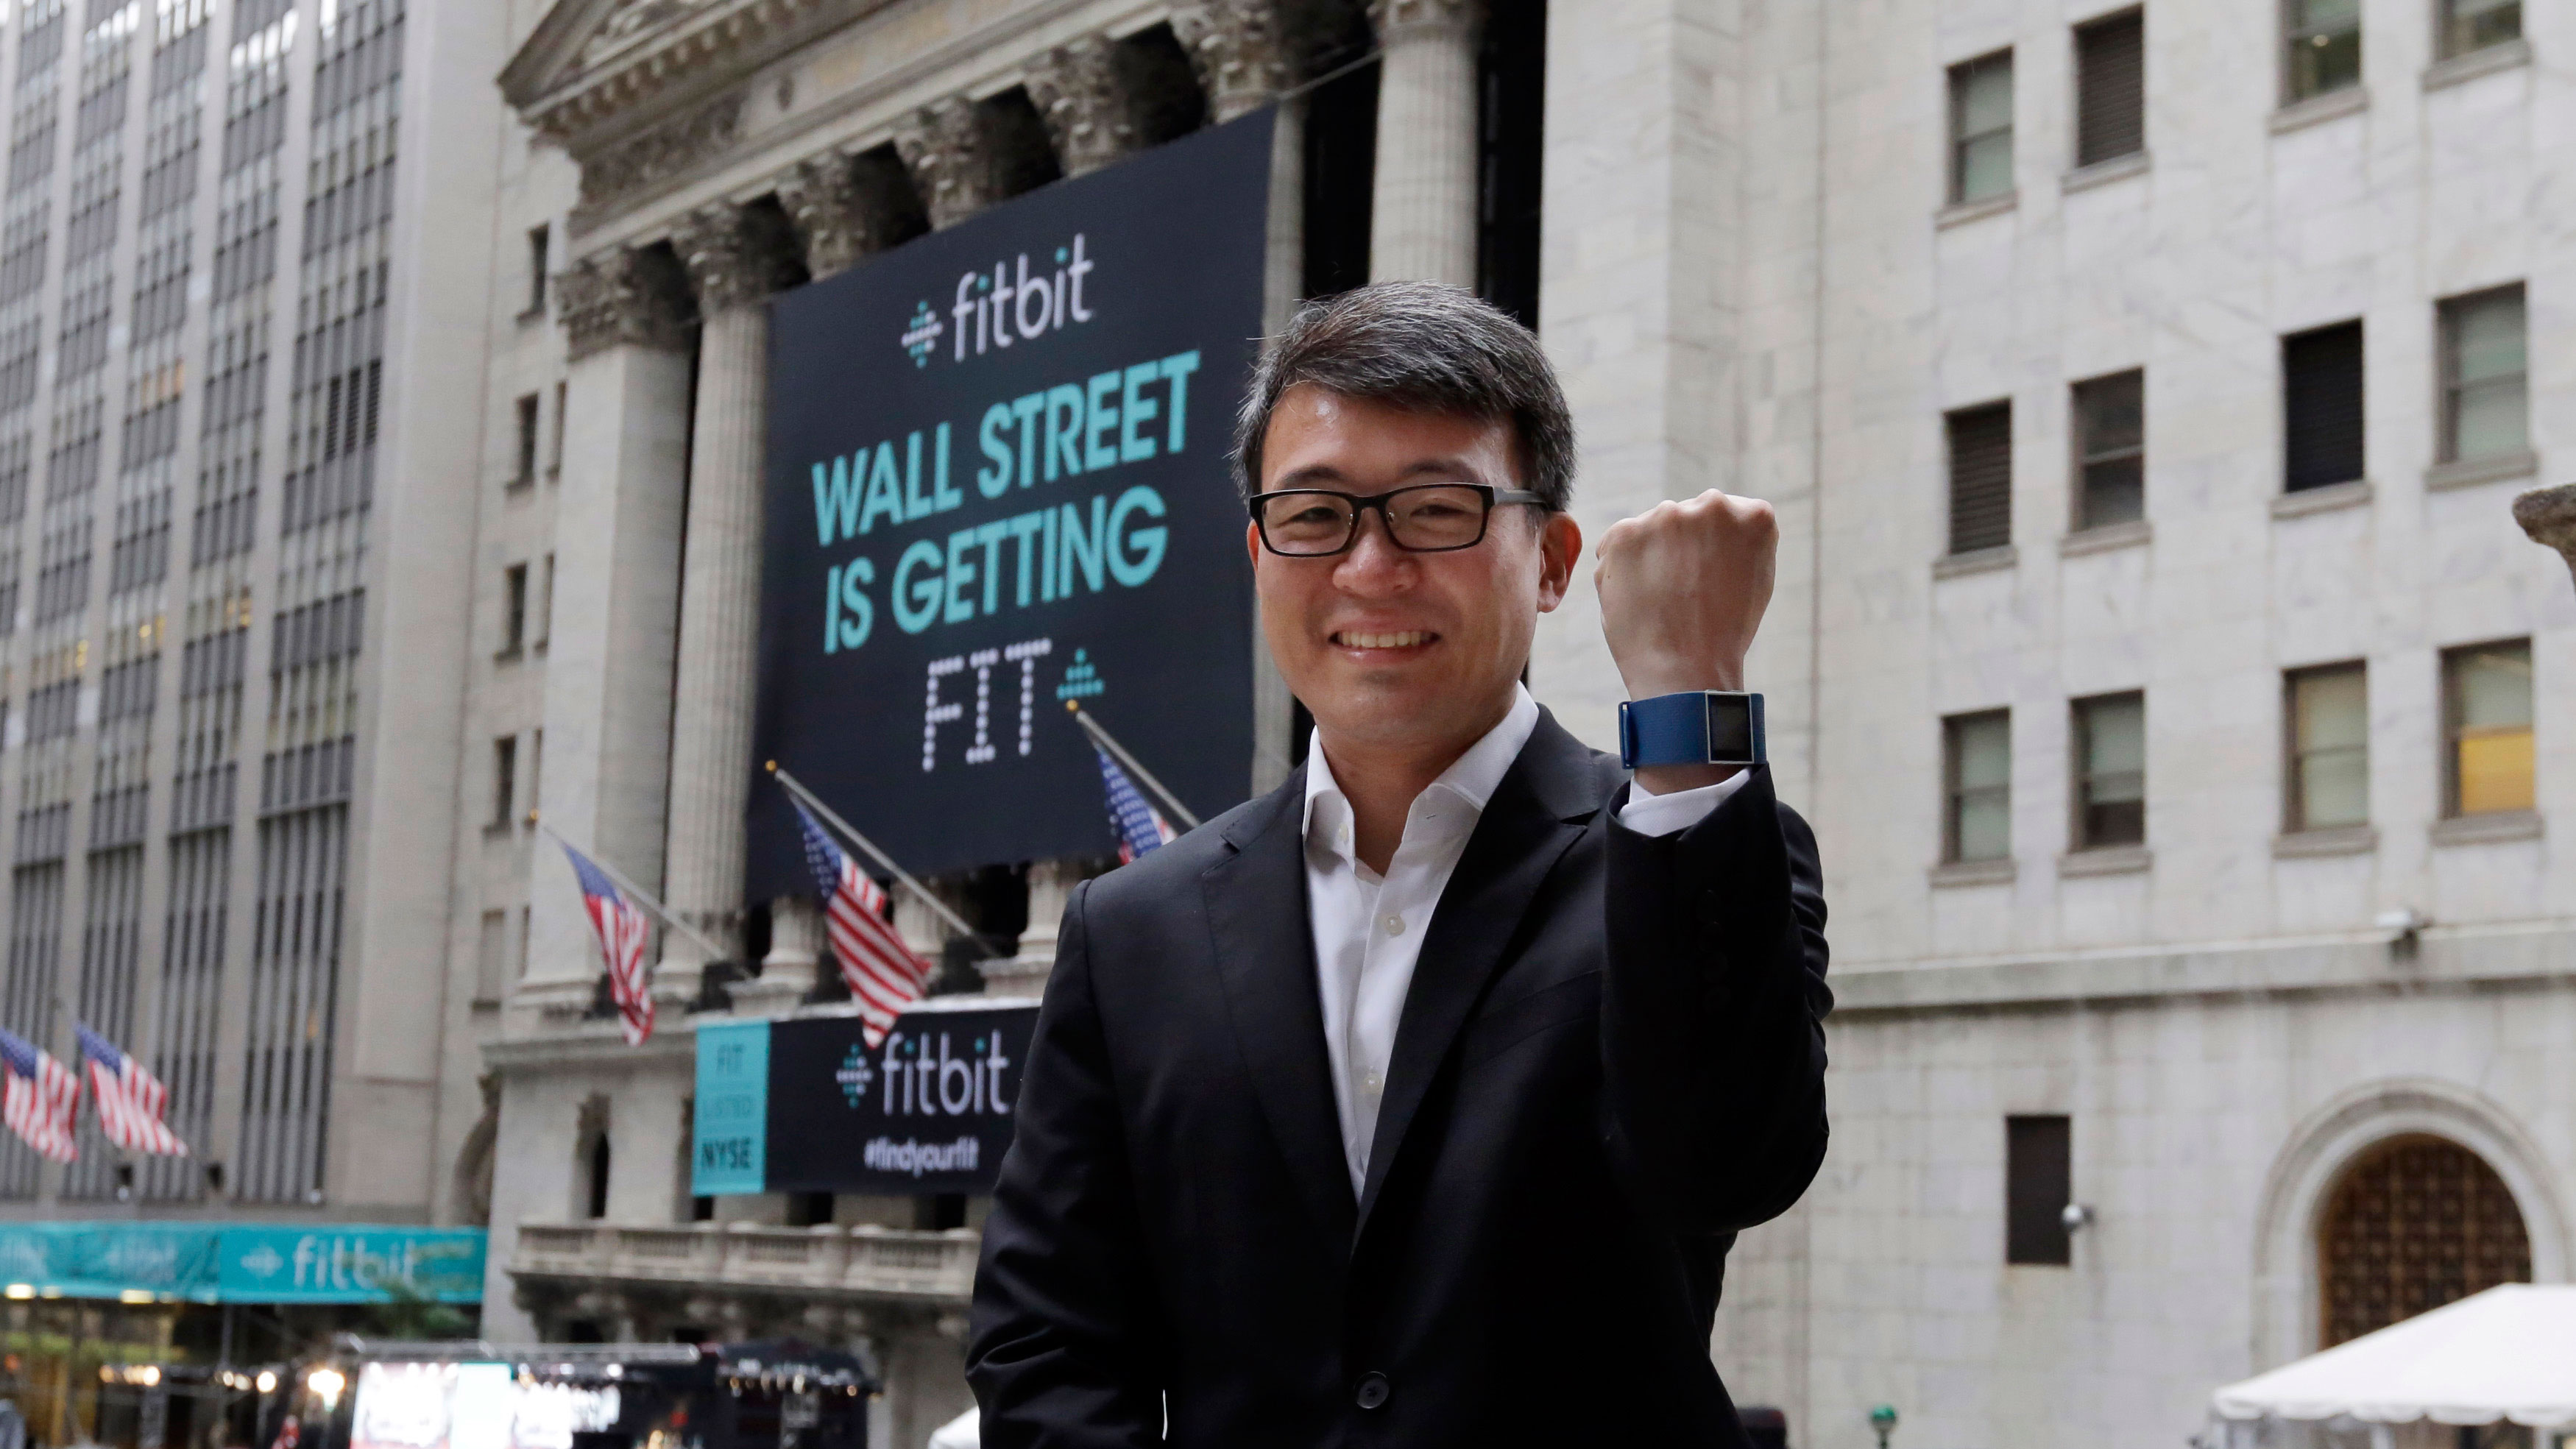 Fitbit CEO James Park shows off one of his devices as he poses for photos outside the New York Stock Exchange, before his company's IPO, Thursday, June 18, 2015. Fitbit makes devices that can be worn on the wrist or clipped to clothing to monitor daily steps, calories burned and grab other data. (AP Photo/Richard Drew)